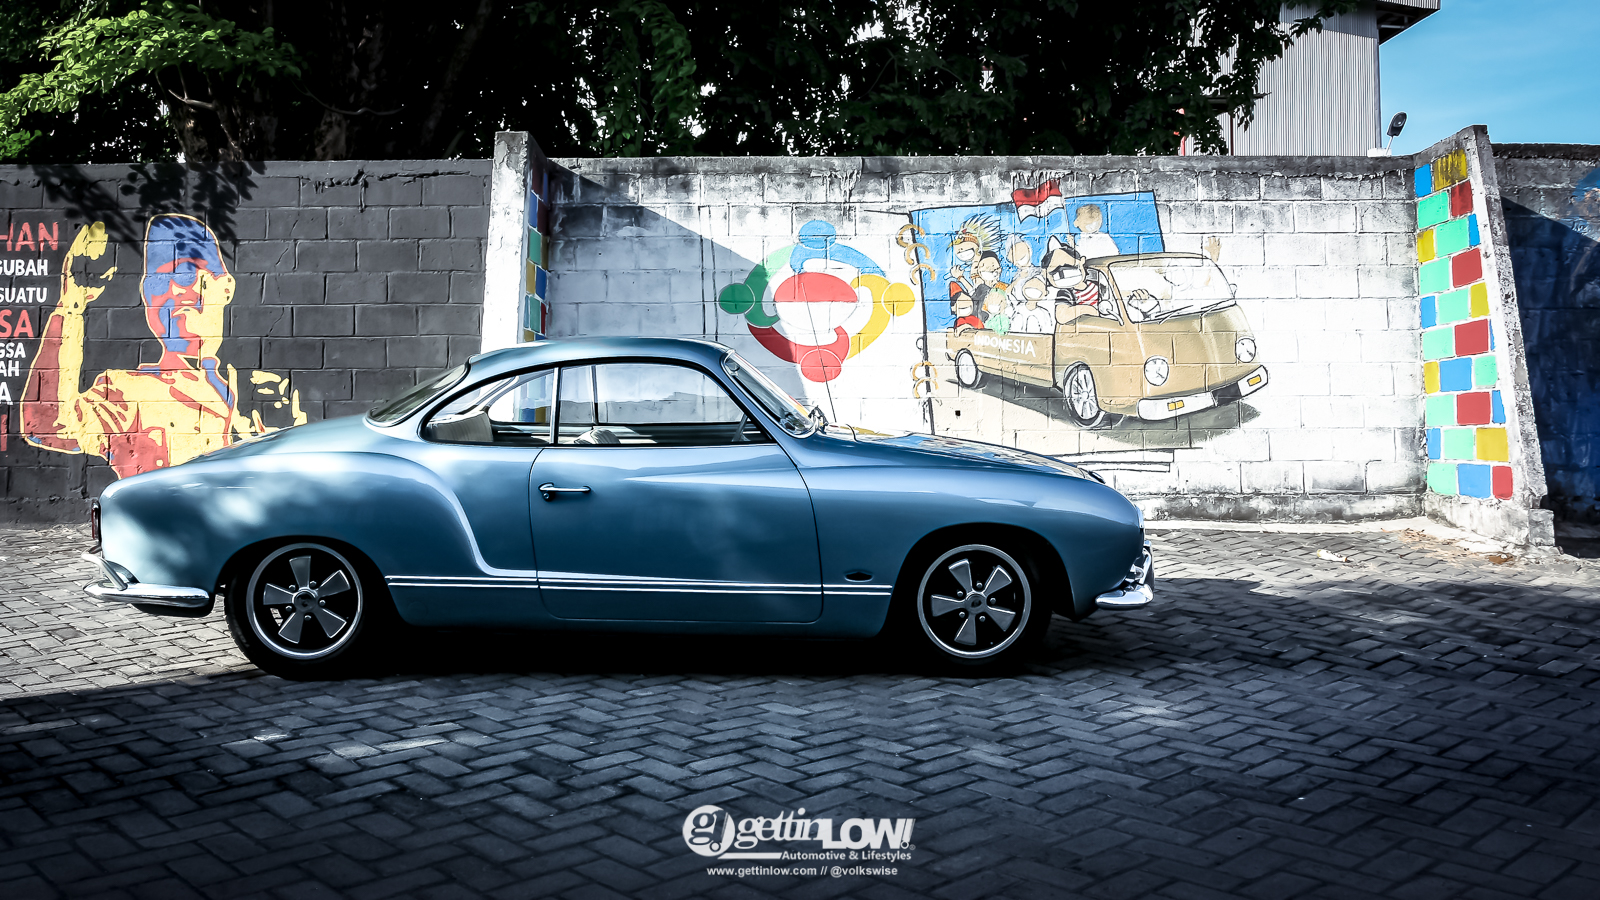 KarmannGhia_lowlight_1959-6